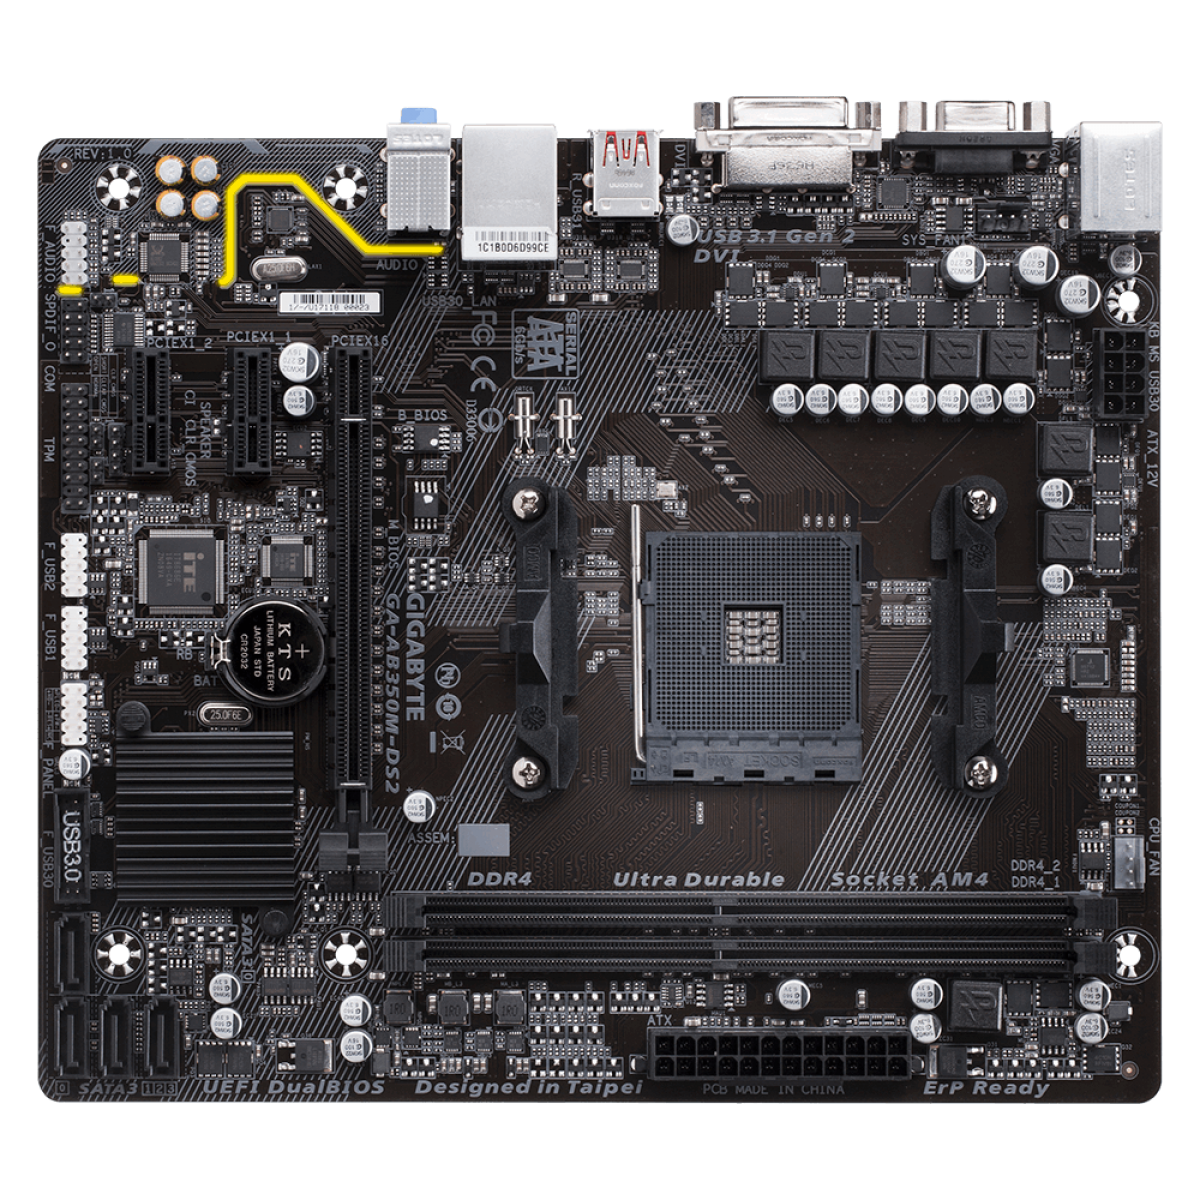 Placa Mãe Gigabyte GA-AB350M-DS2, Chipset B350, AMD AM4, mATX, DDR4